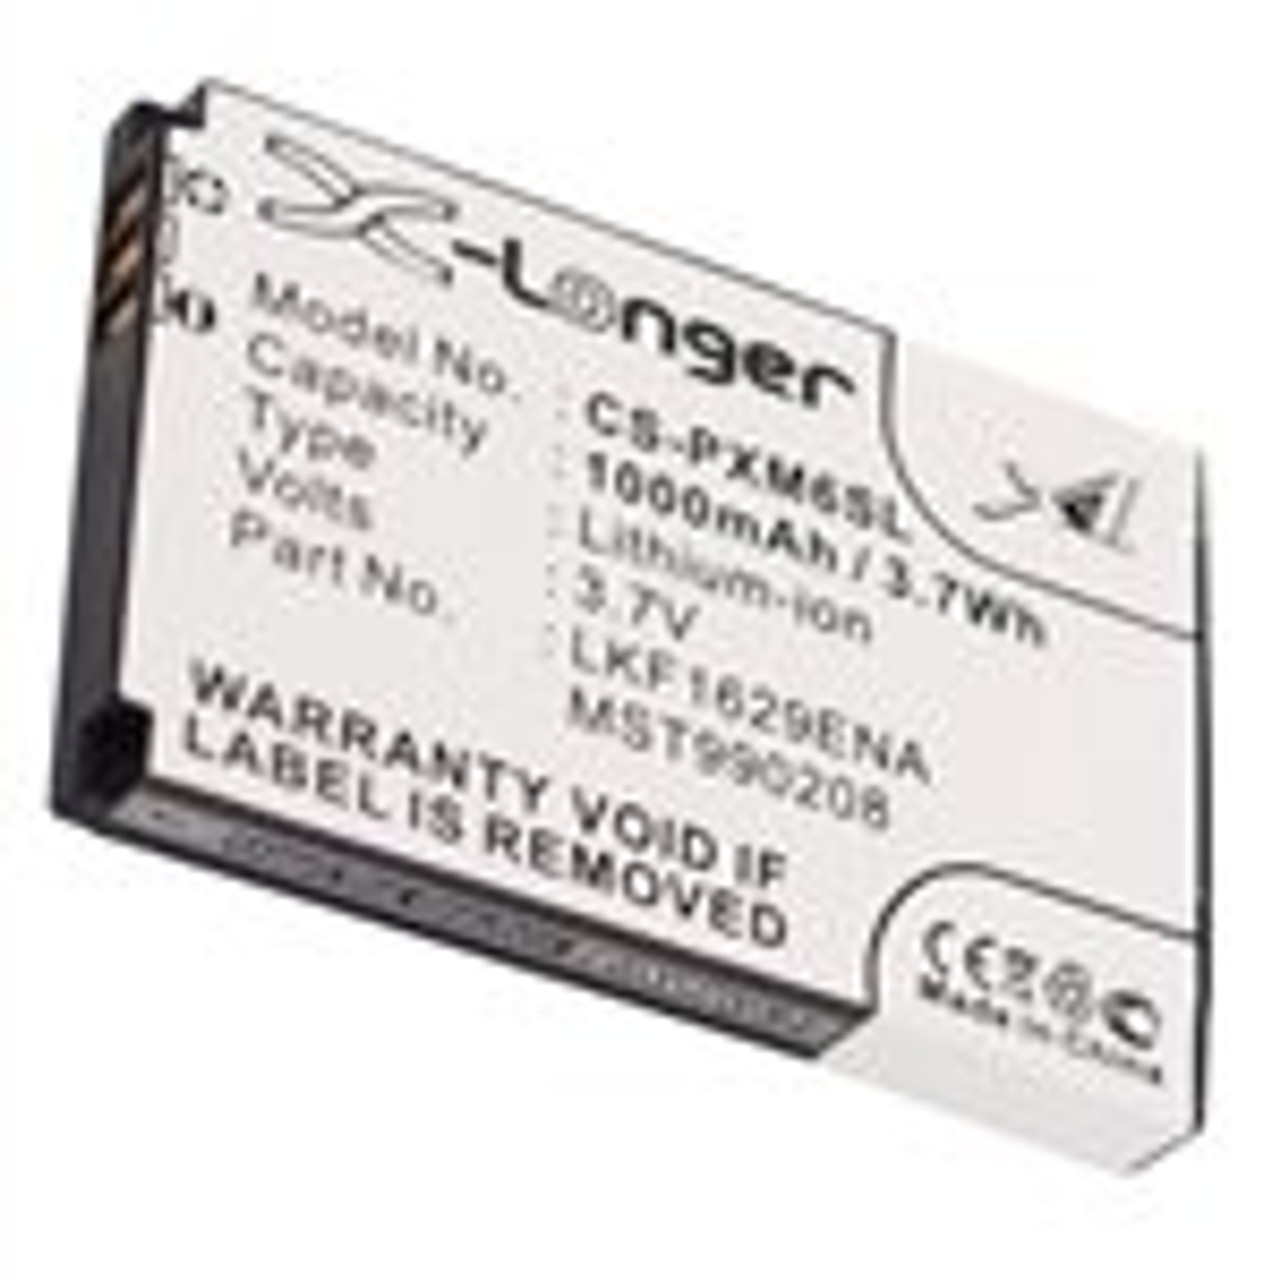 Replacement Battery Part No.990208 for Samsung Nexus 25 YP-X5X Samsung Nexus 50 Nexus 50 YP-X5ZX Samsung Nexus 25 YP-X5X YP-X5Z 1000mAh MP3 Player Battery